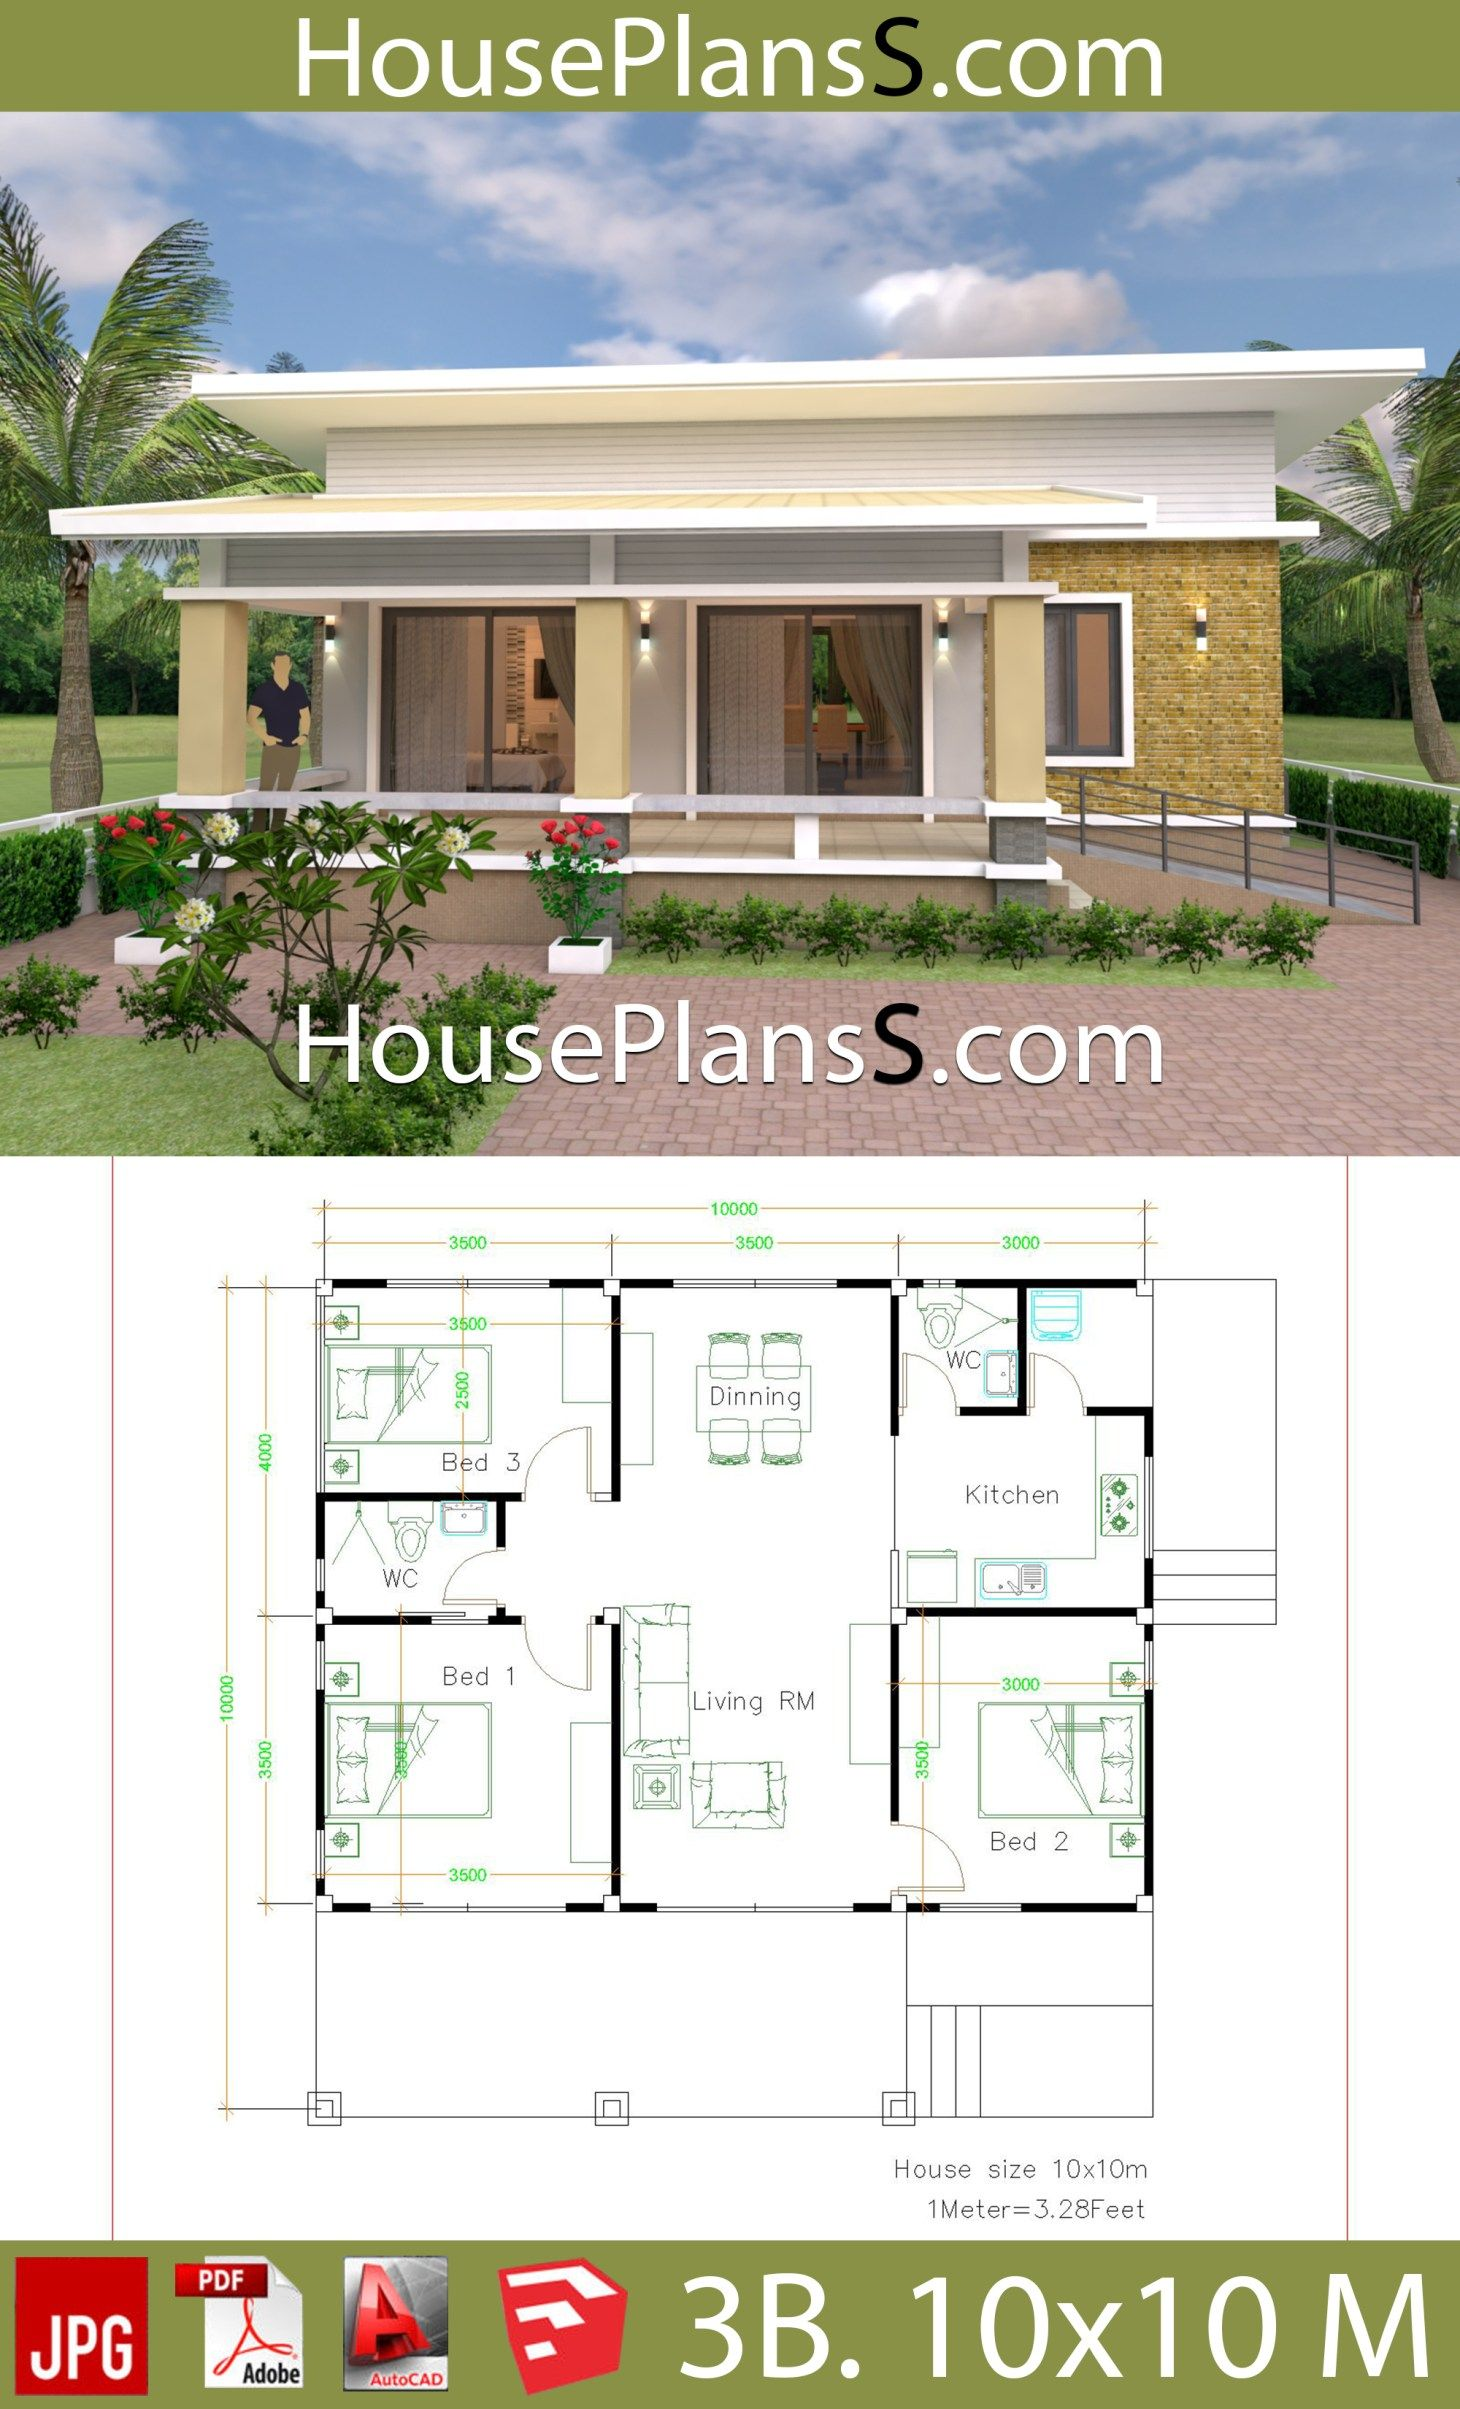 Decorating A 10x10 Bedroom: House Design Plans 10x10 With 3 Bedrooms Full Interior